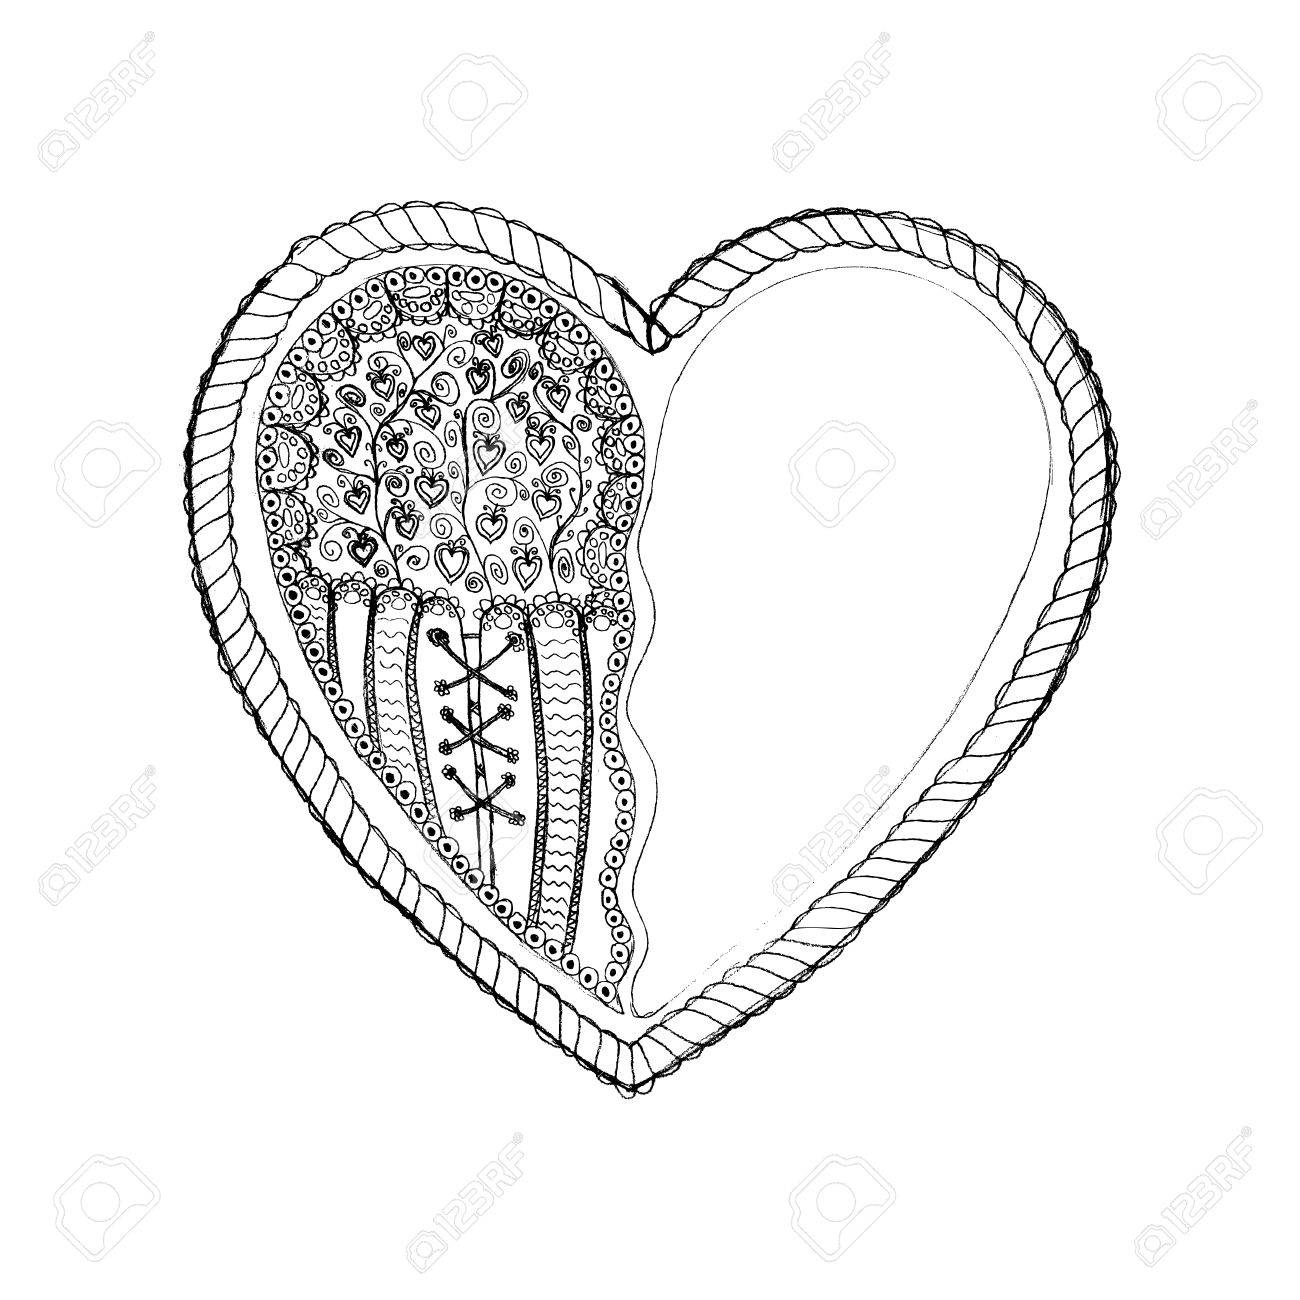 1300x1300 Ornate Hand Drawn Heart Sketch. Black On White Color. St